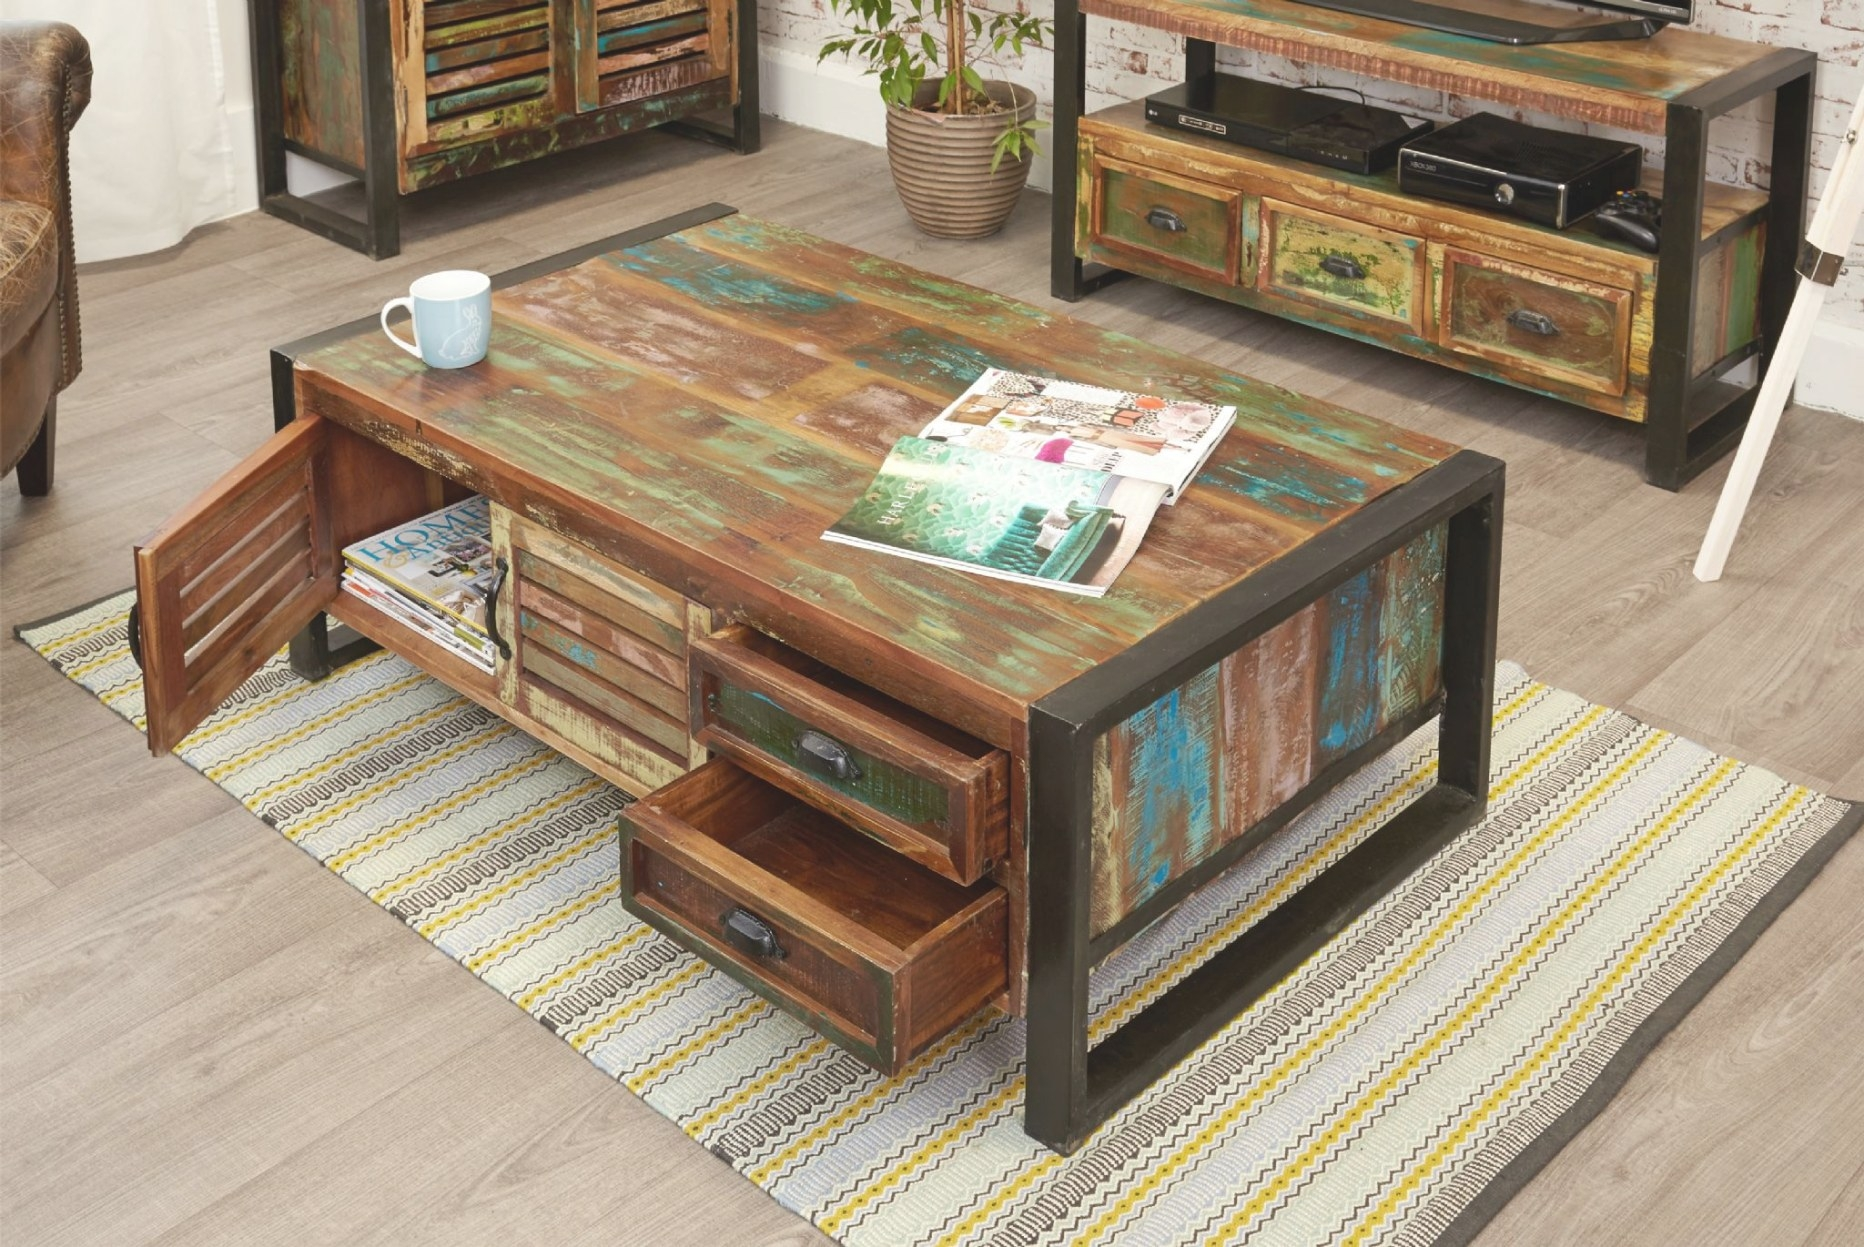 Industrial Coffee Table With 4 Drawers | Find More At Big Blu within Coffee Table With Drawers